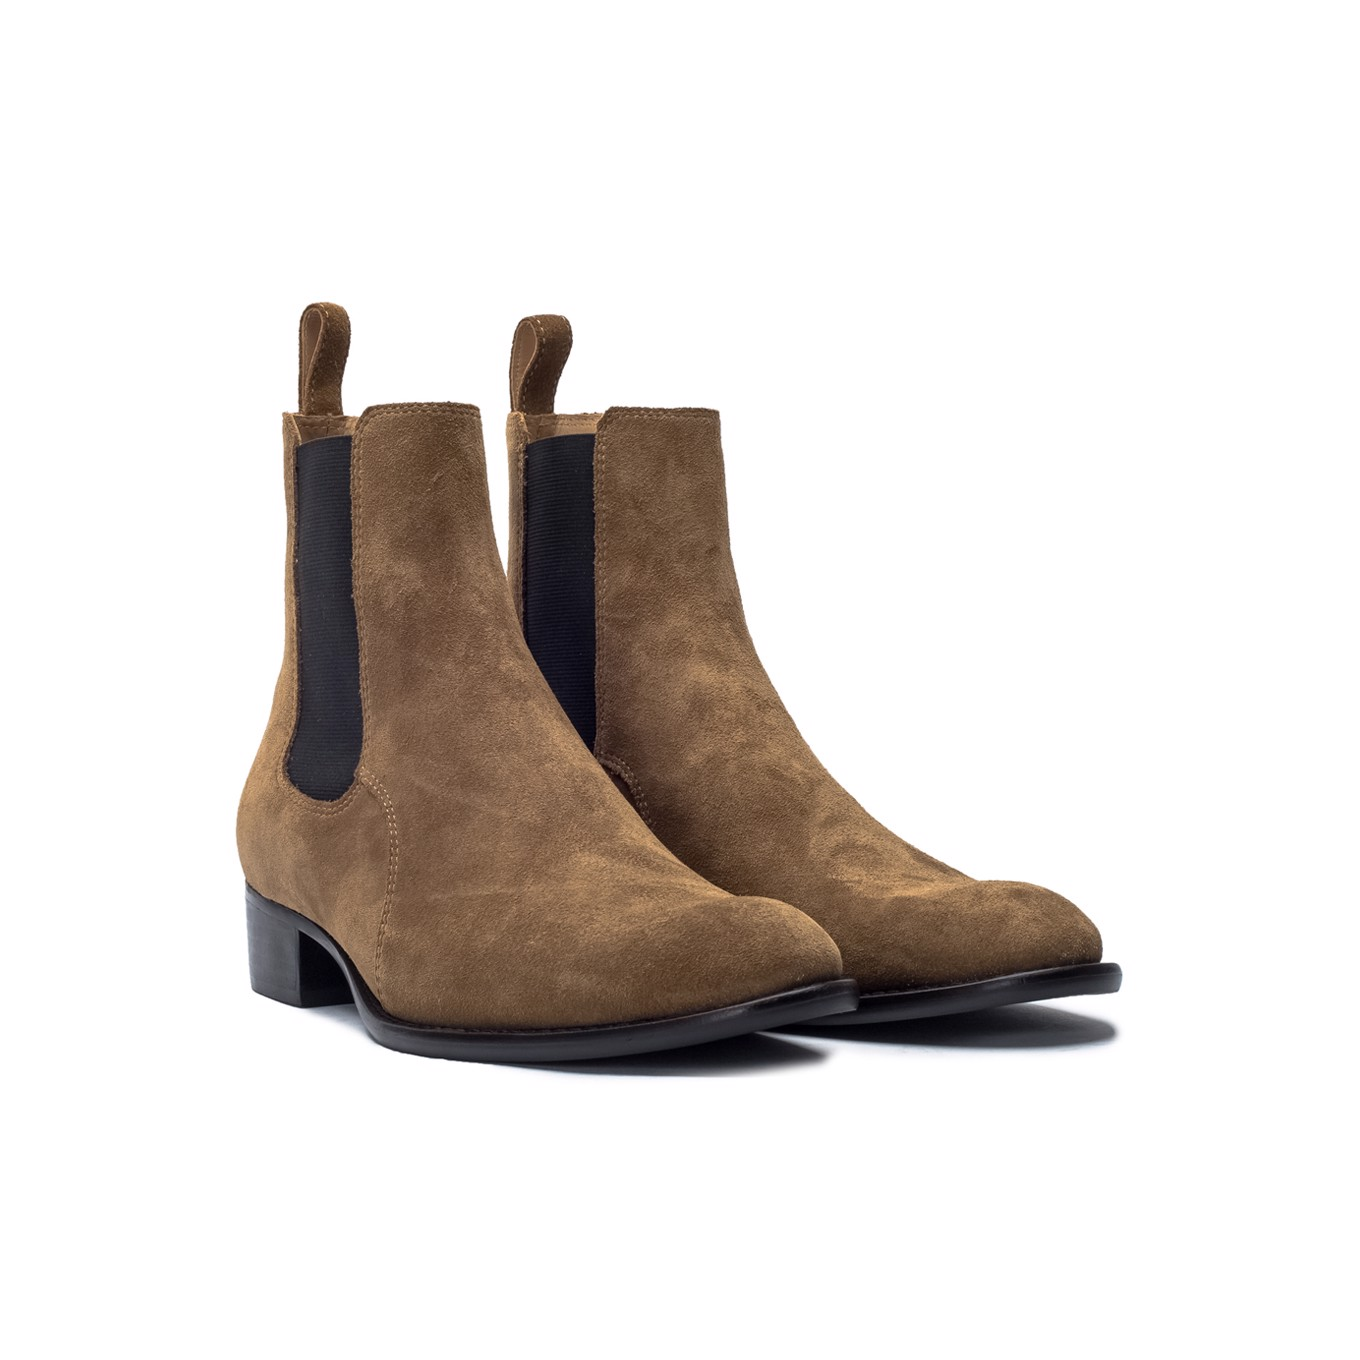 THE WILD WALK CHELSEA BOOT BLACK SOLE – TOBACCO